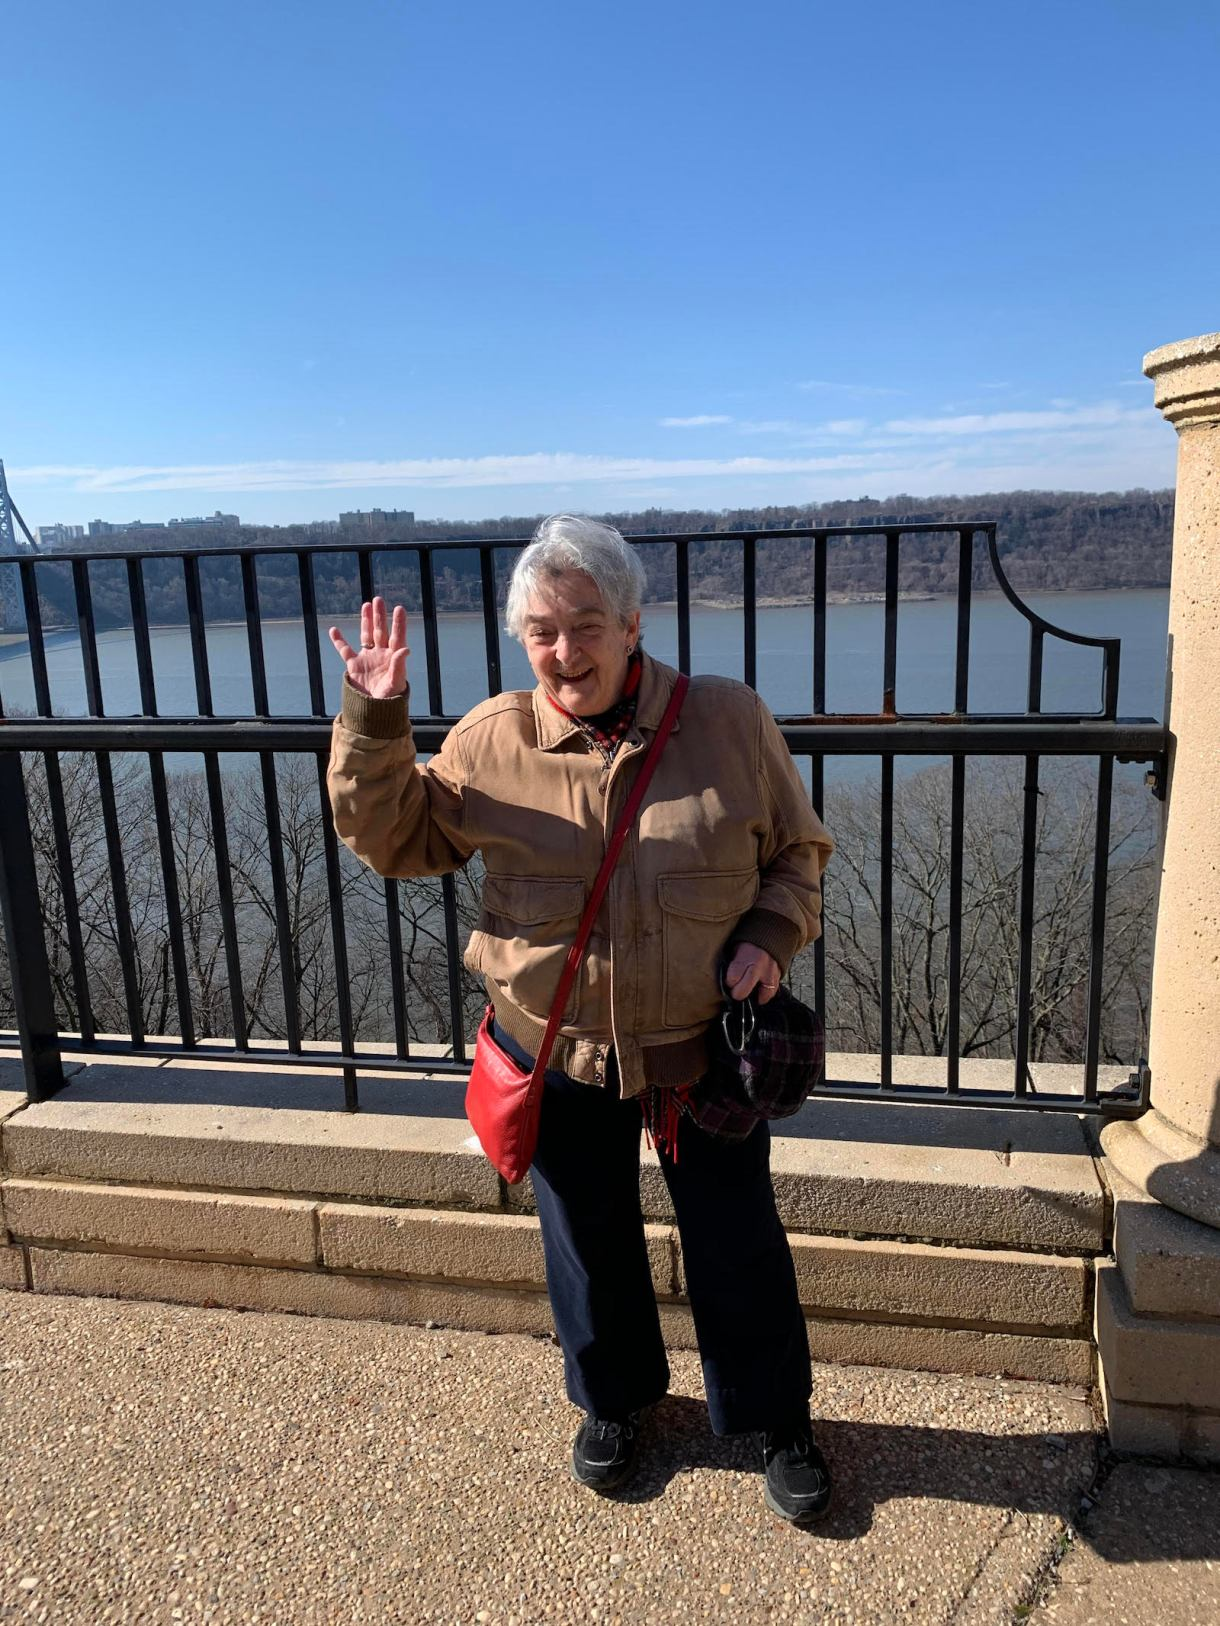 Miriam Frank, author of book on queers in the labor movement, poses in front of the Hudson River